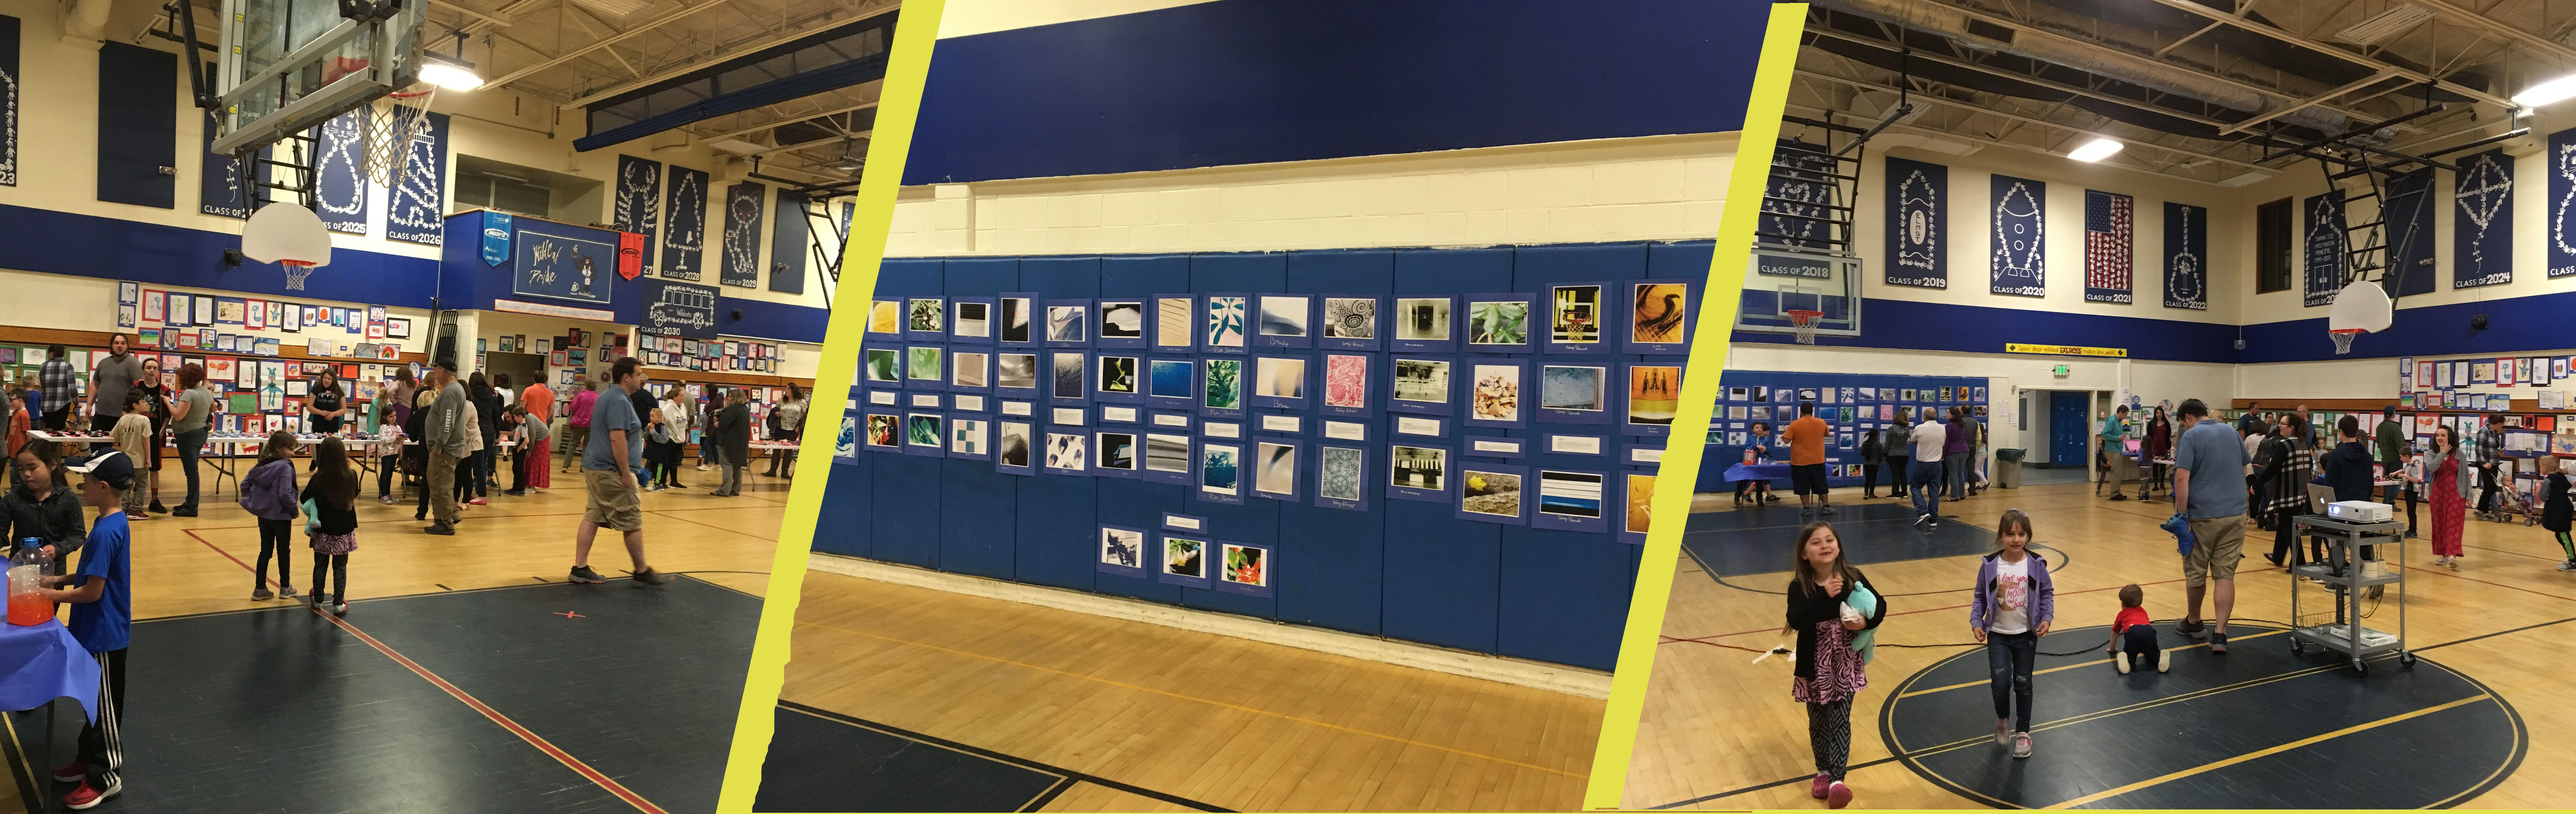 3 photos combined of the elementary art show